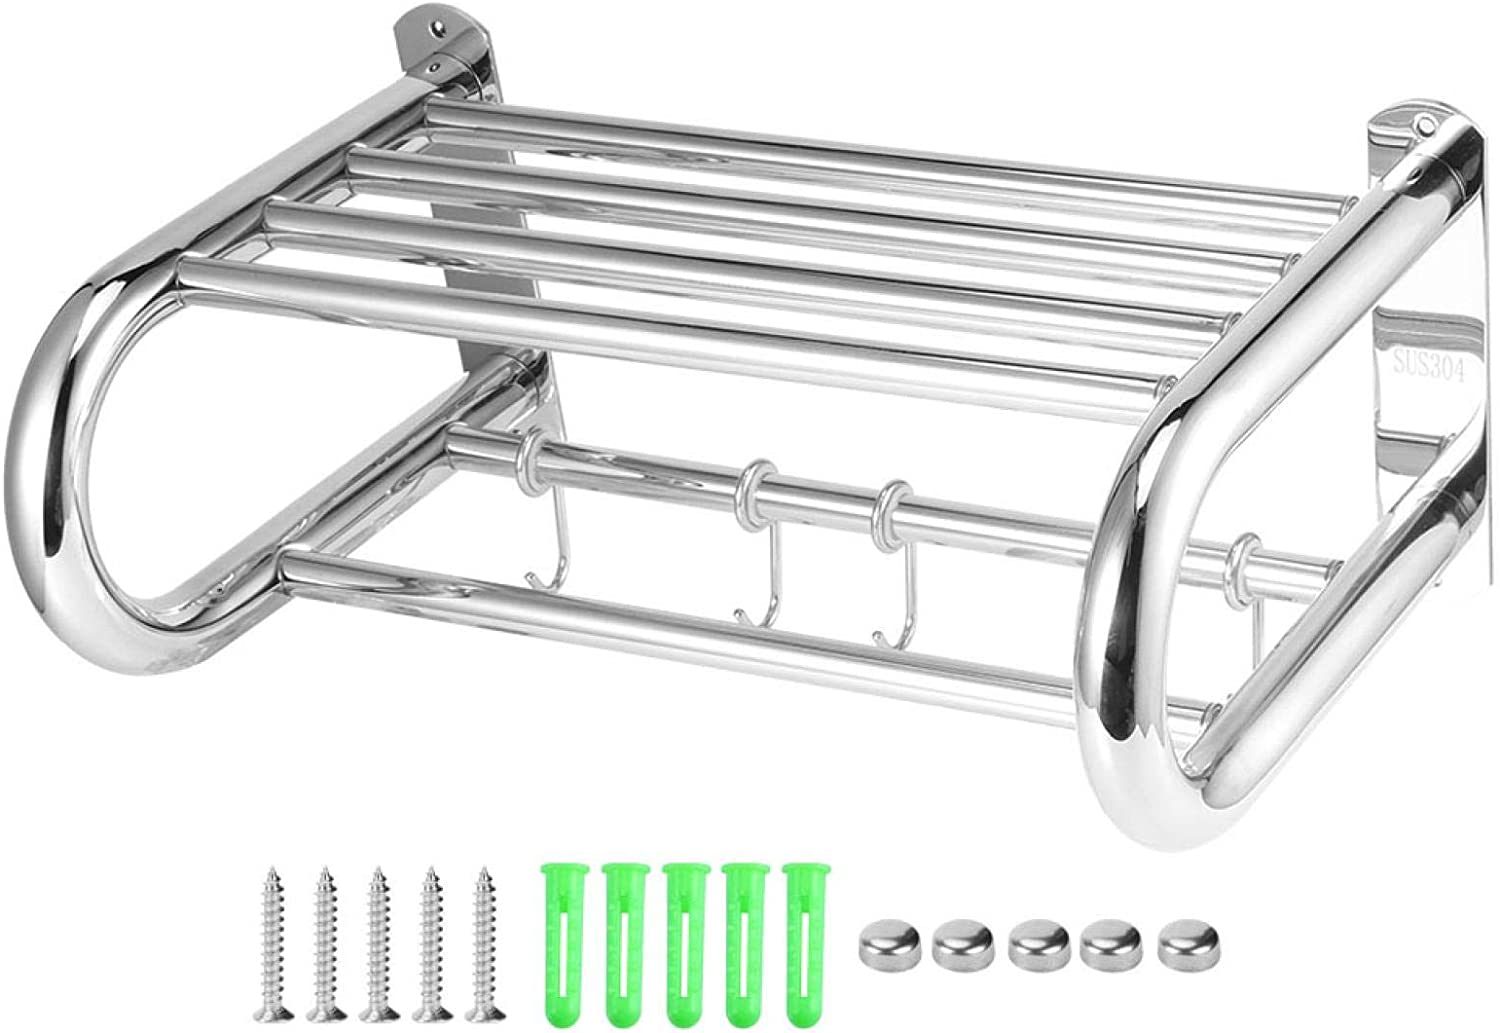 Direct store Fashionable Wall Mounted Stainless Steel Bathroom Shelf Bar a Towel Rod Rack